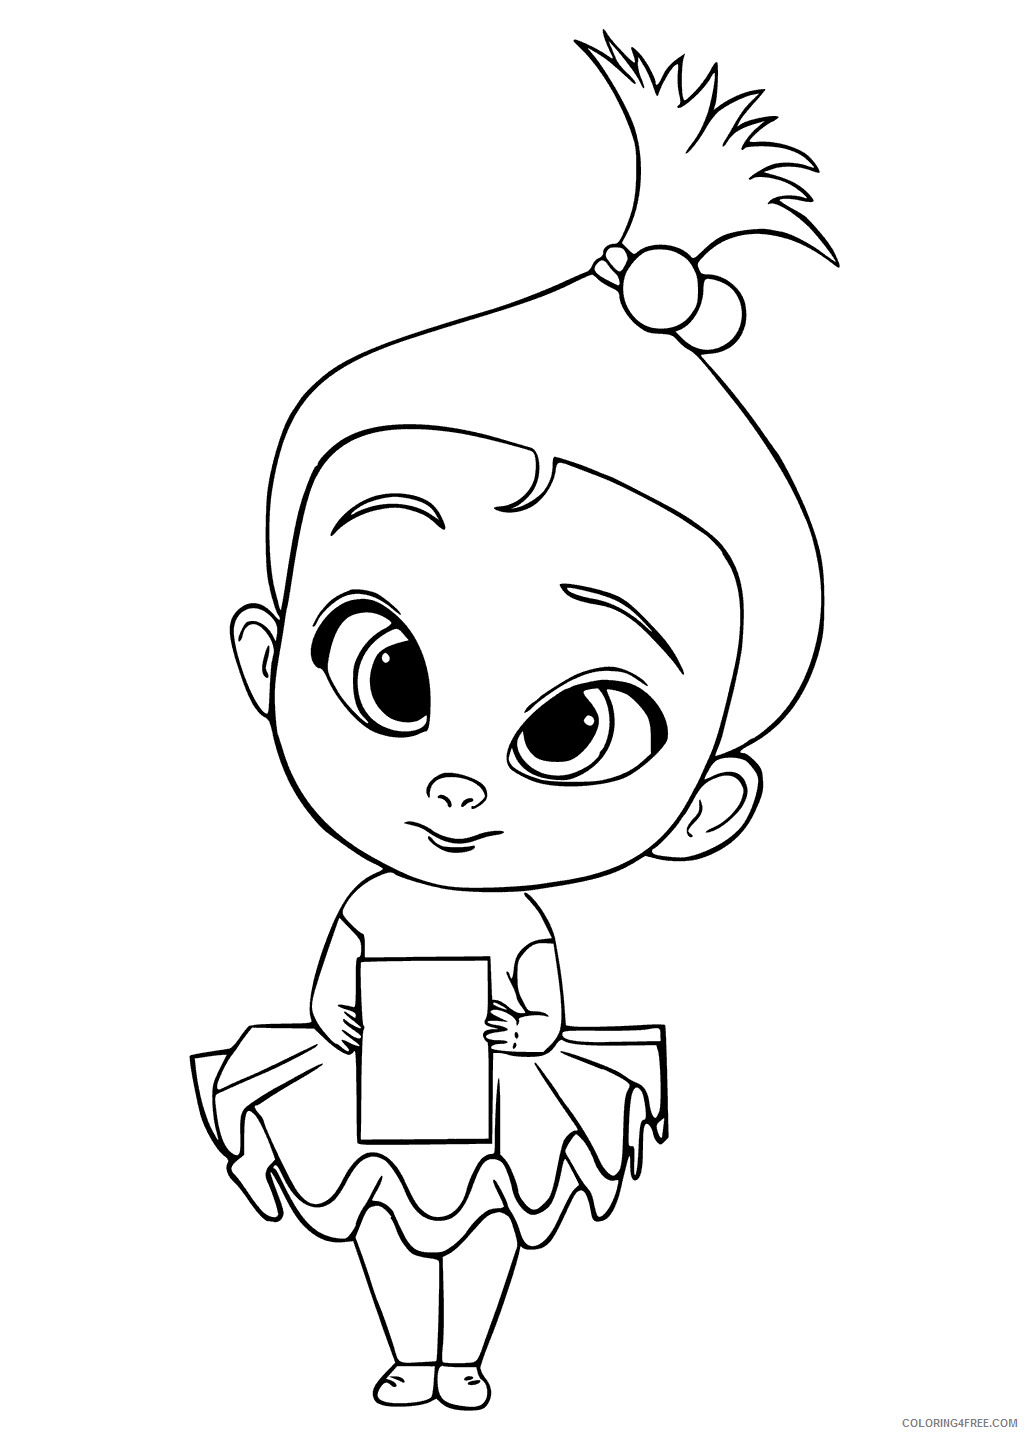 Boss Baby Coloring Pages TV Film boss baby 6 Printable 2020 01258 Coloring4free